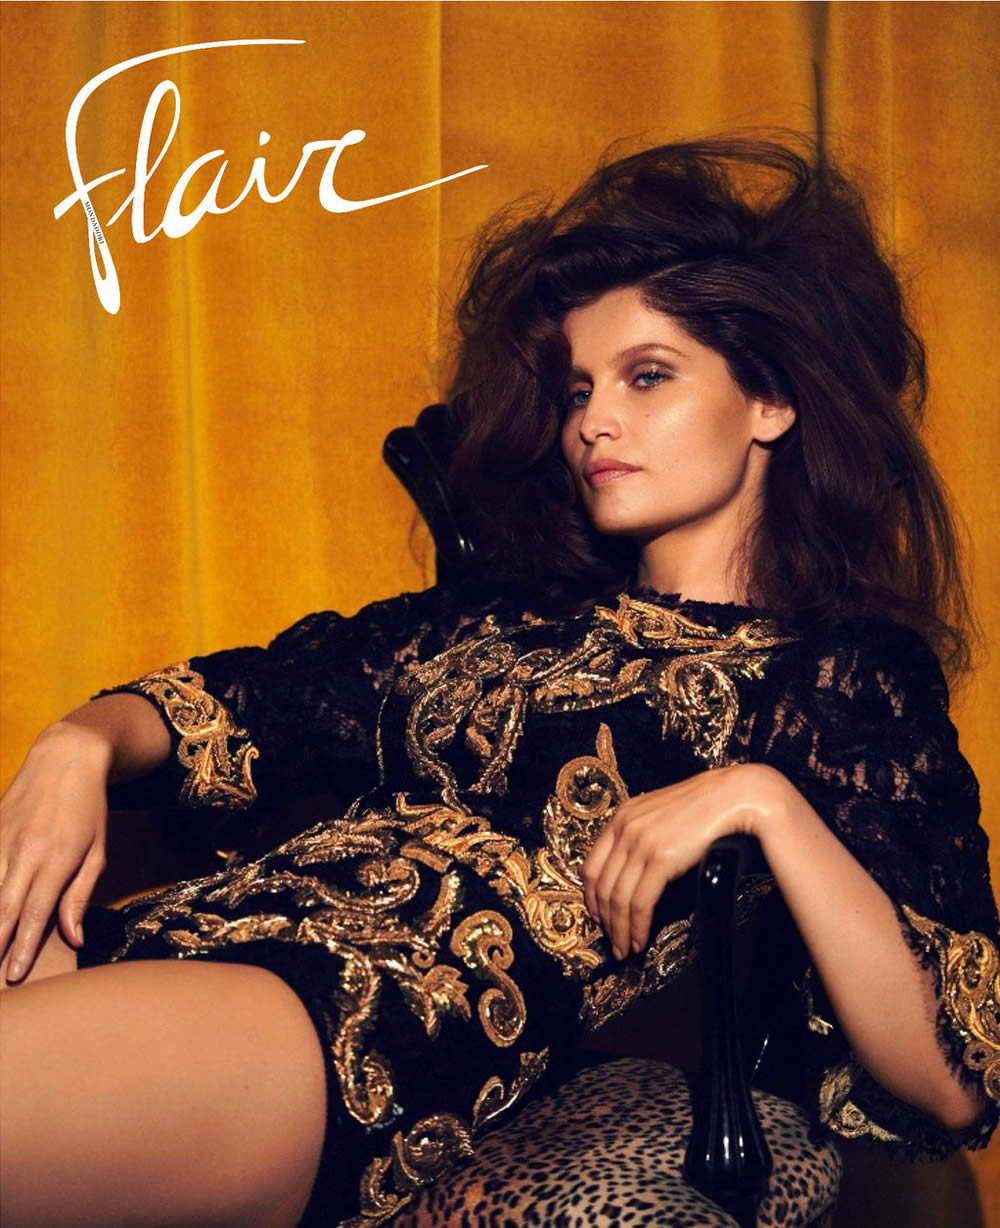 laetitia-casta-flair-cover-3